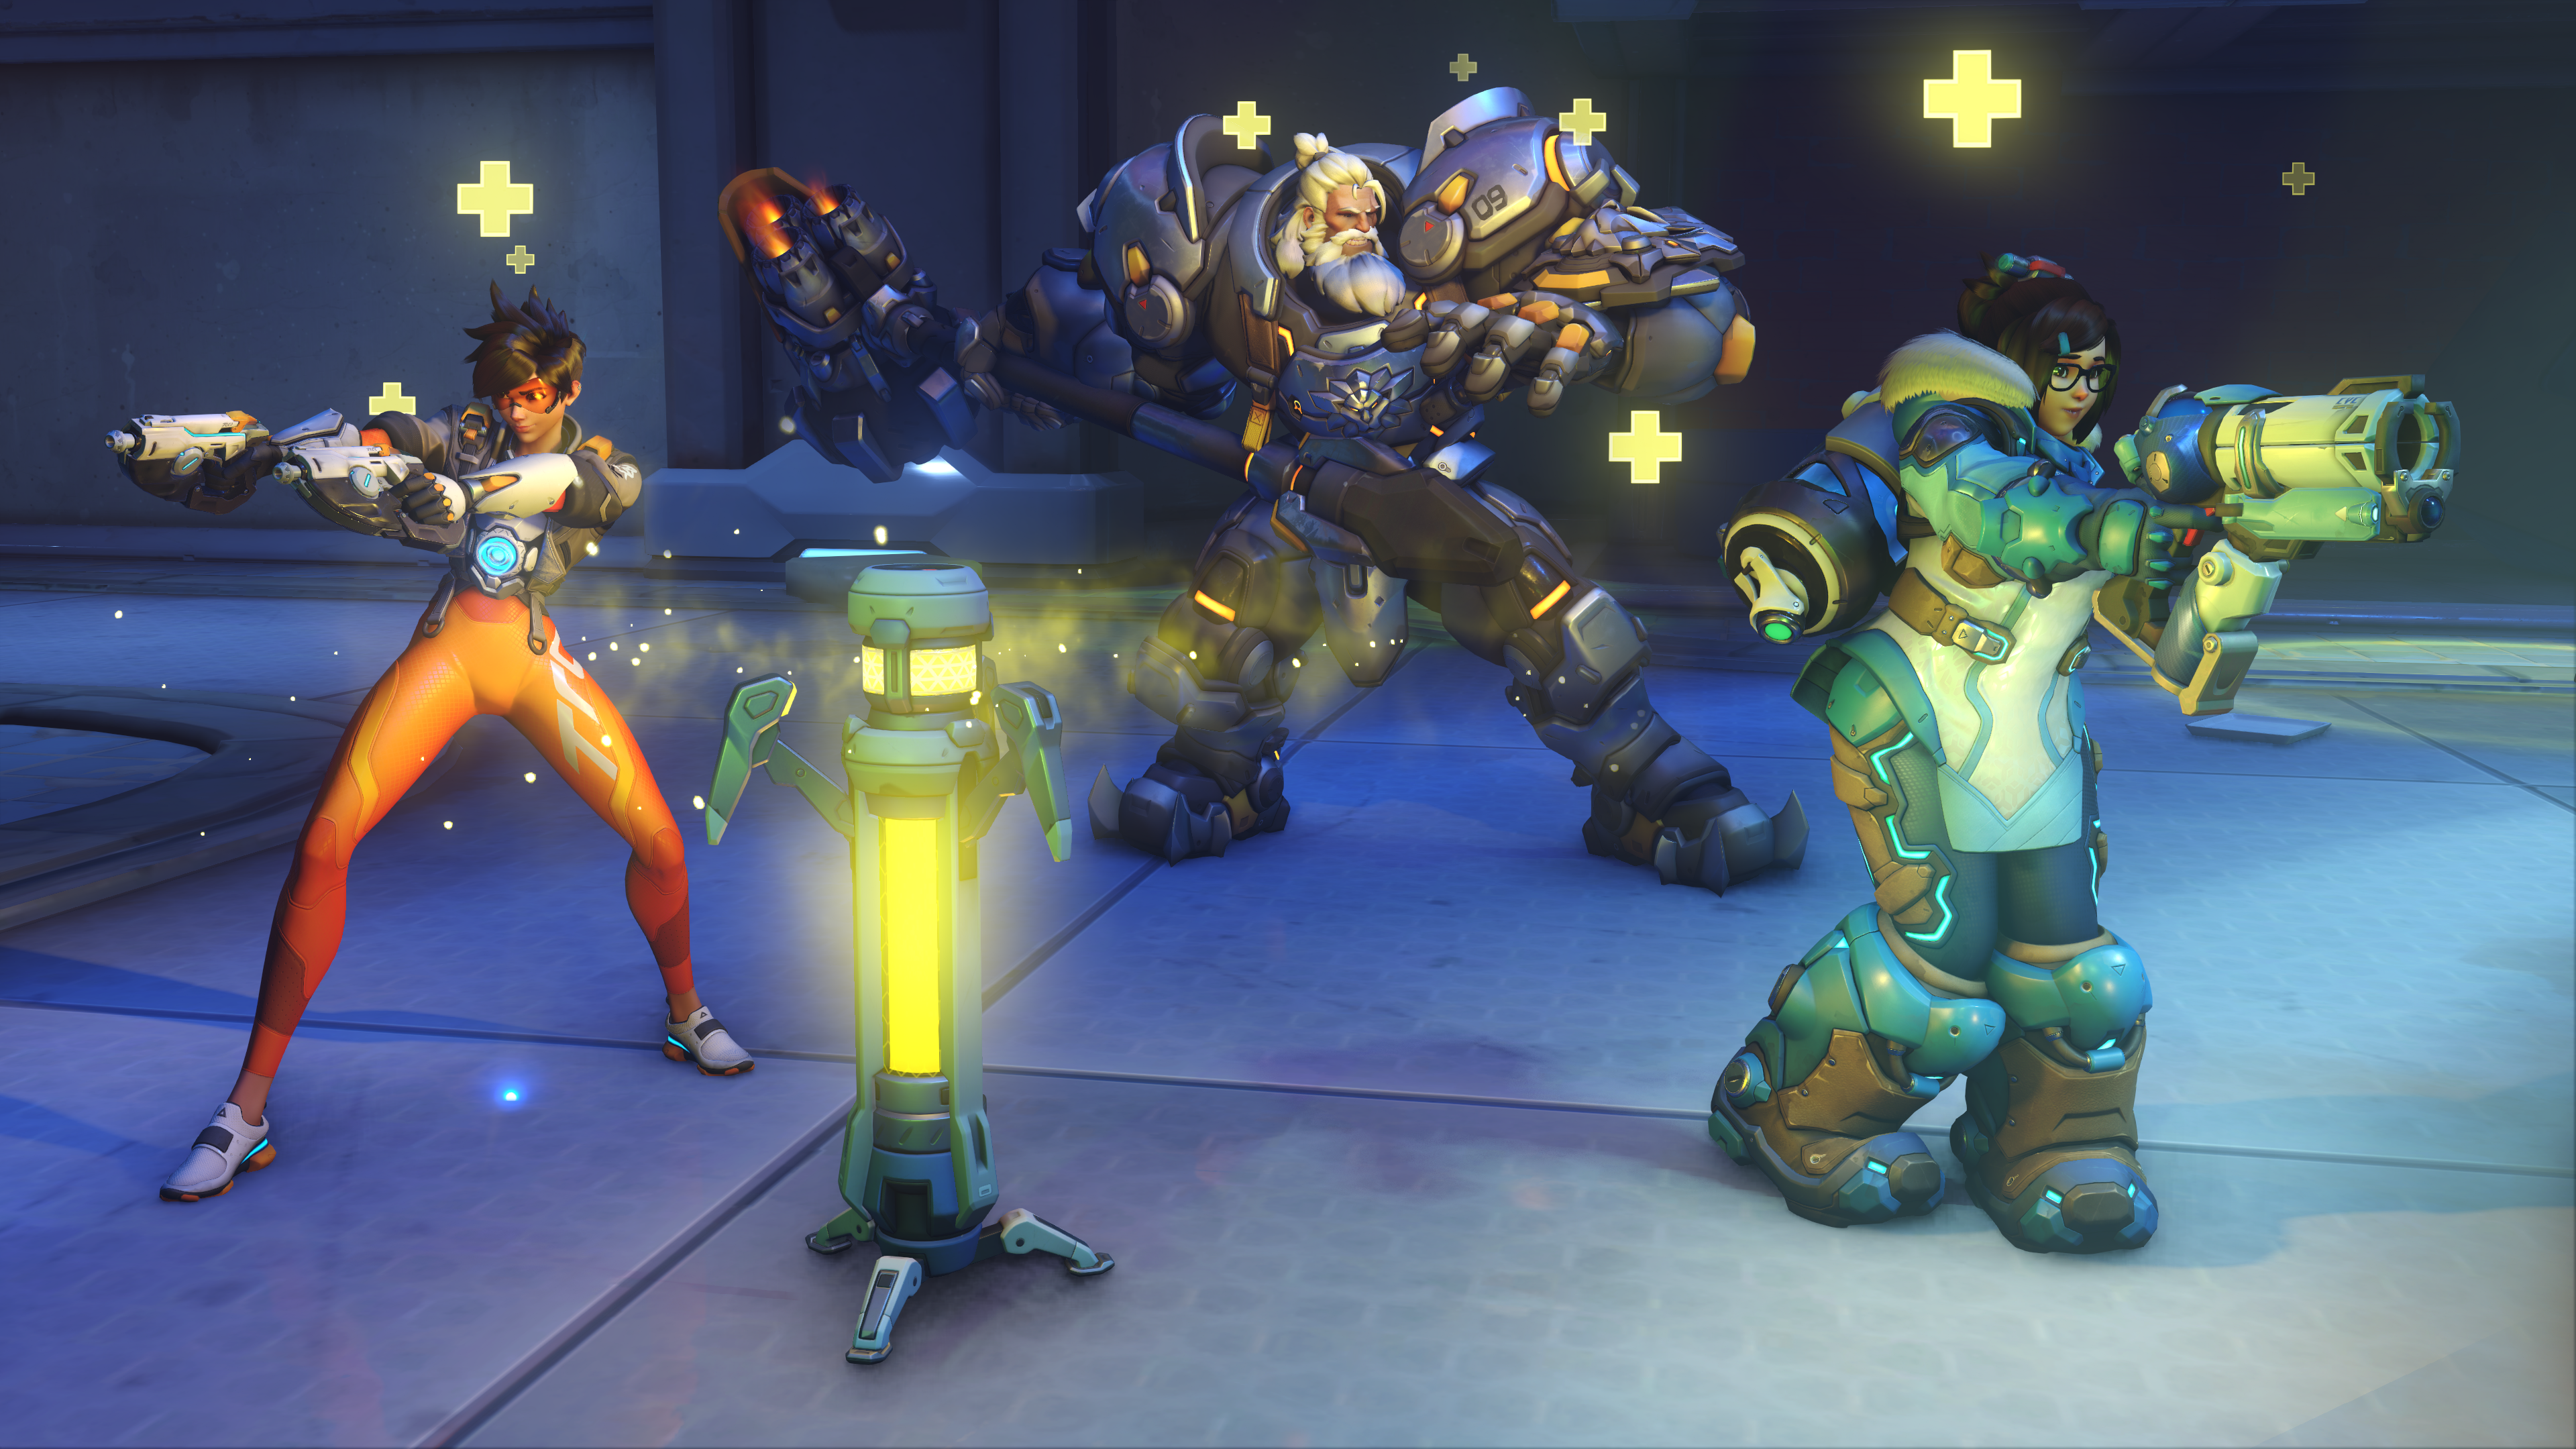 Blizzard is showcasing new Overwatch 2 gameplay later this month screenshot